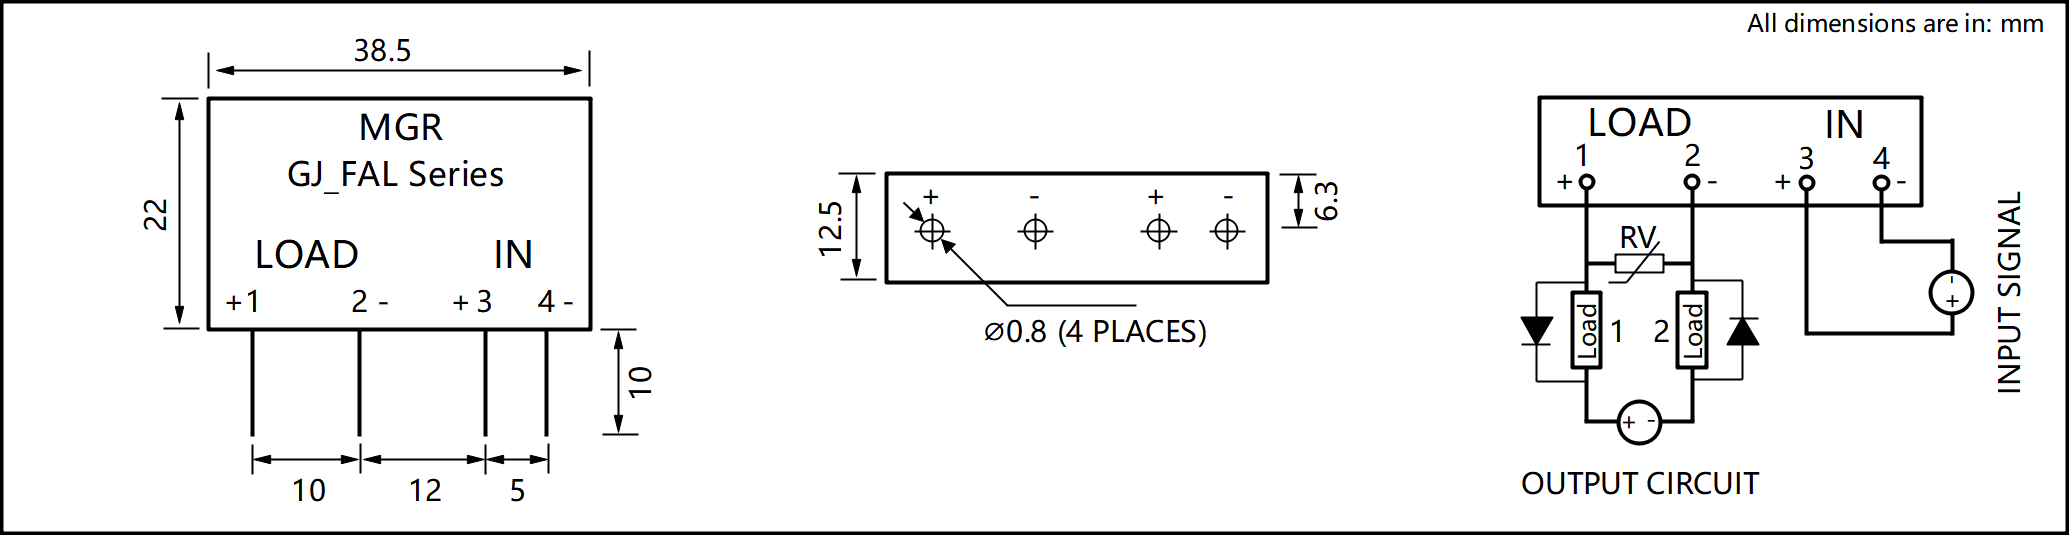 GJ_FAL Series PCB Mount Solid State Relay diagram